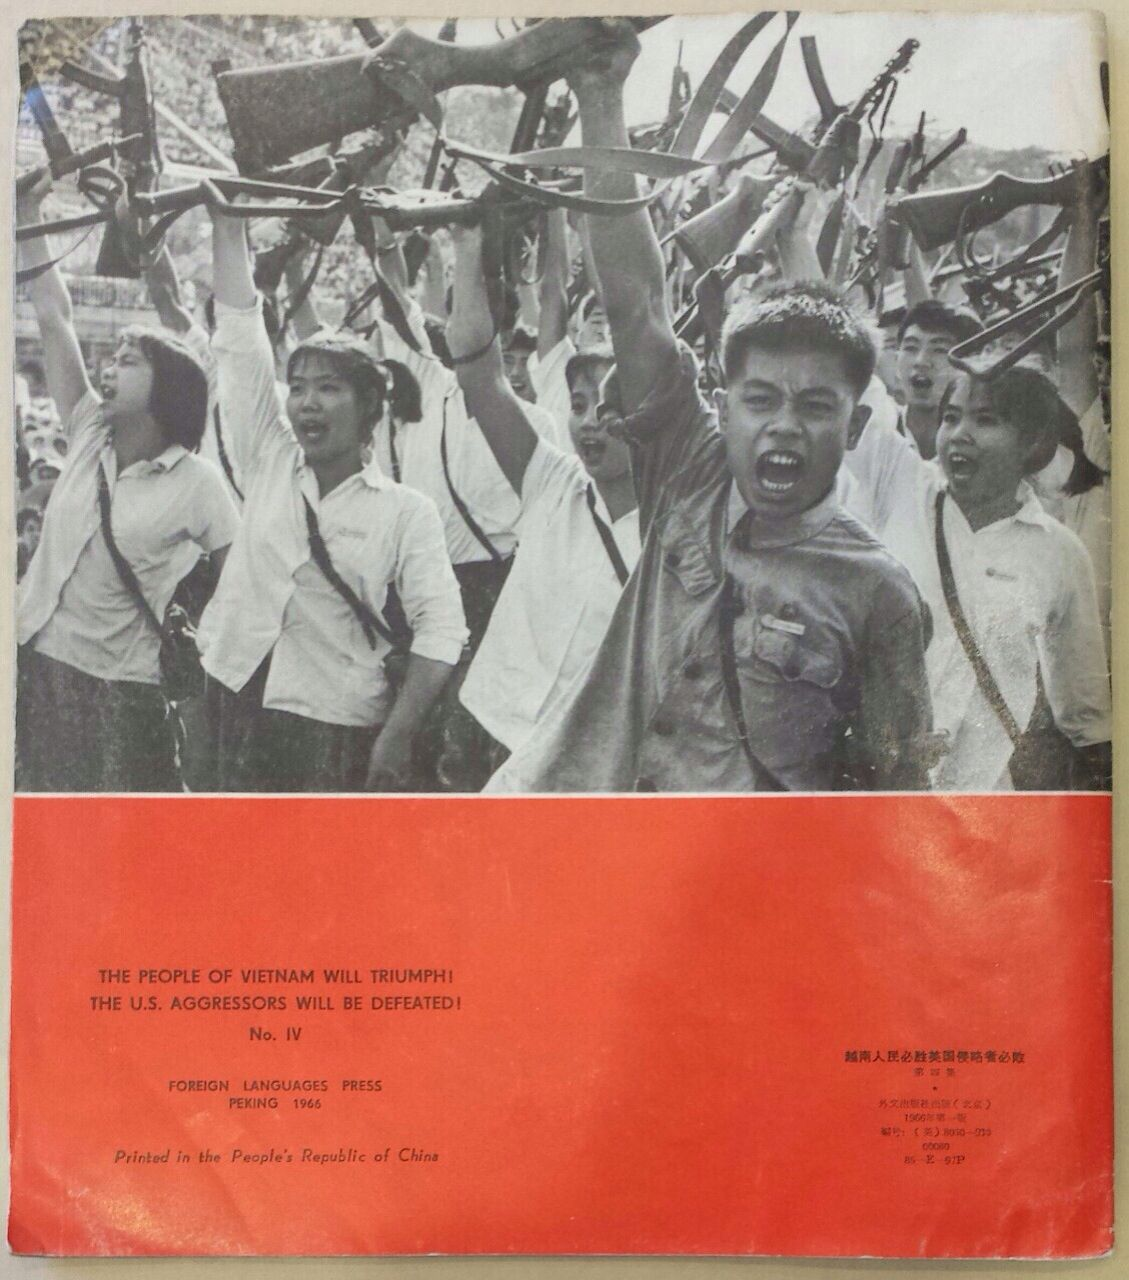 radicalarchive: 'The People of Vietnam Will Triumph!  The U.S. Aggressors Will Be Defeated! ', Foreign Languages Press, People's Republic of China, 1966.